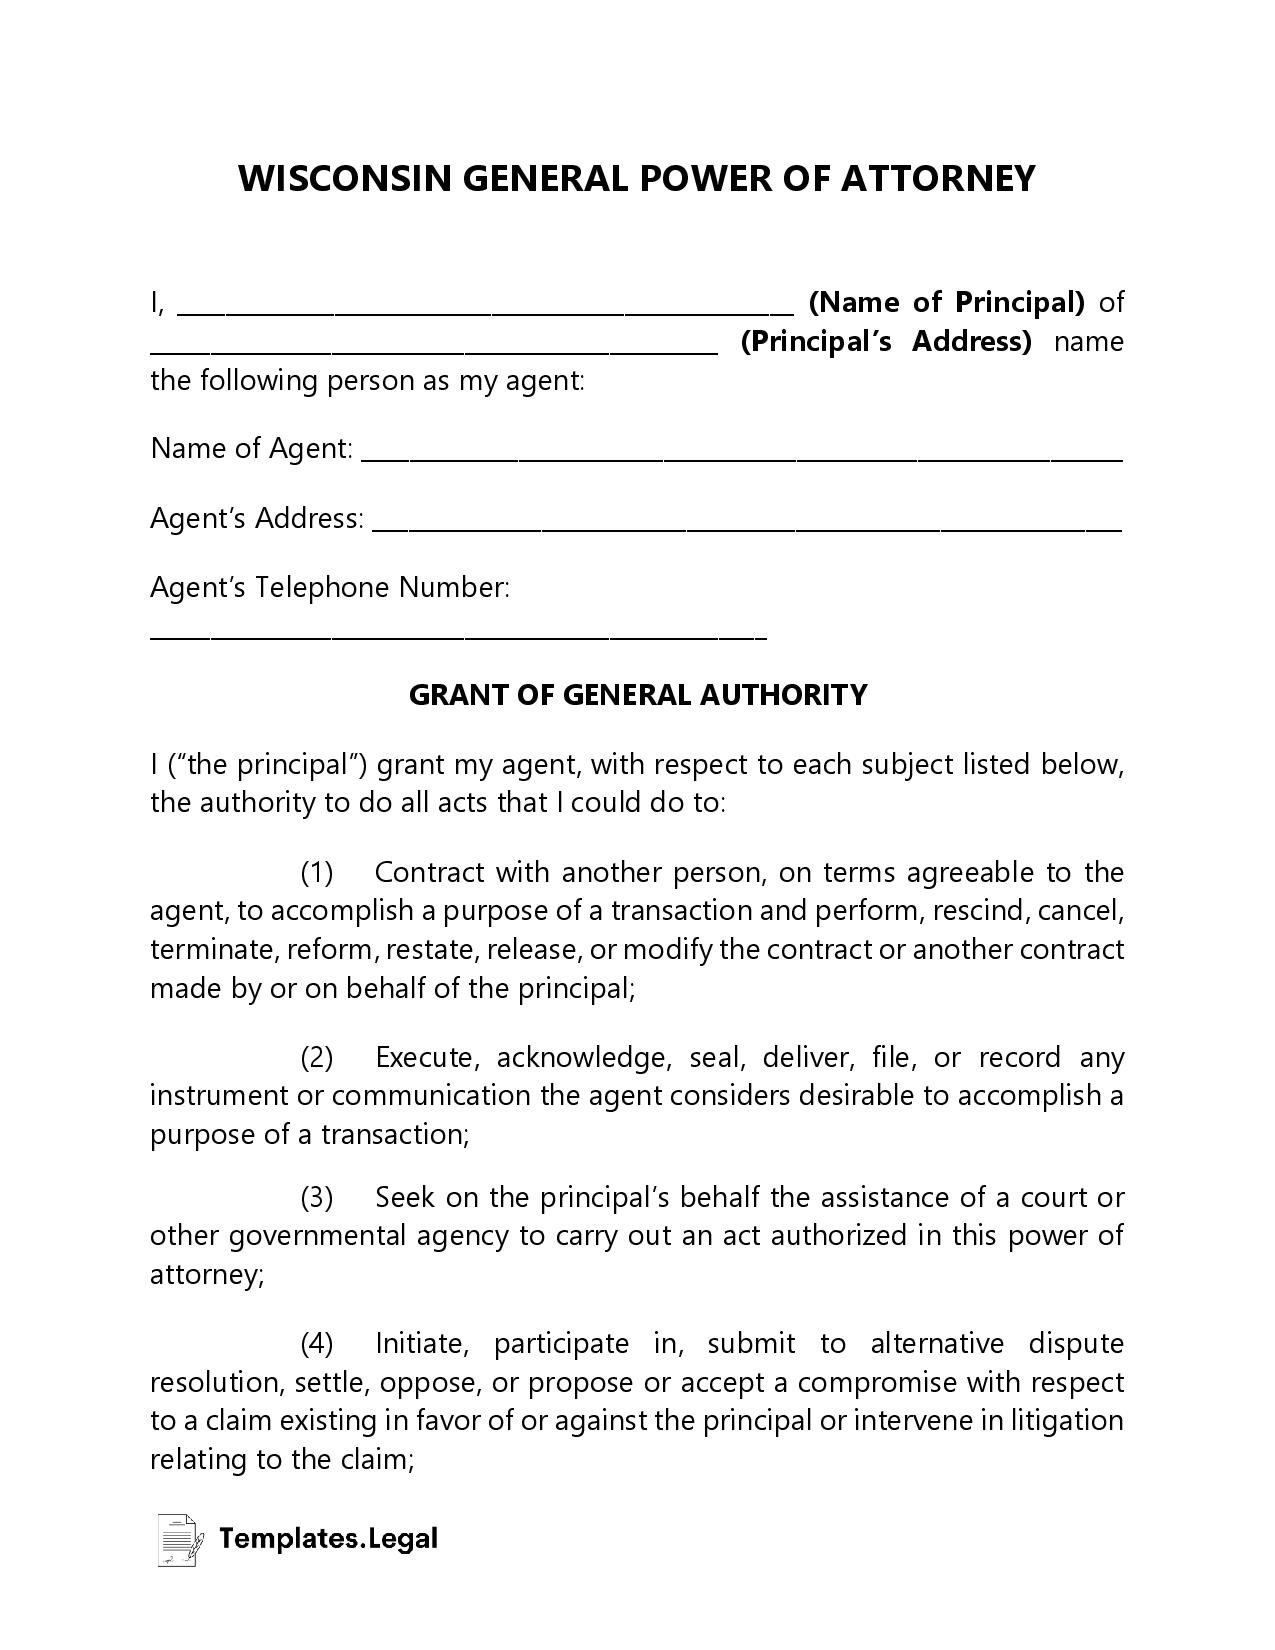 Wisconsin General Power of Attorney - Templates.Legal